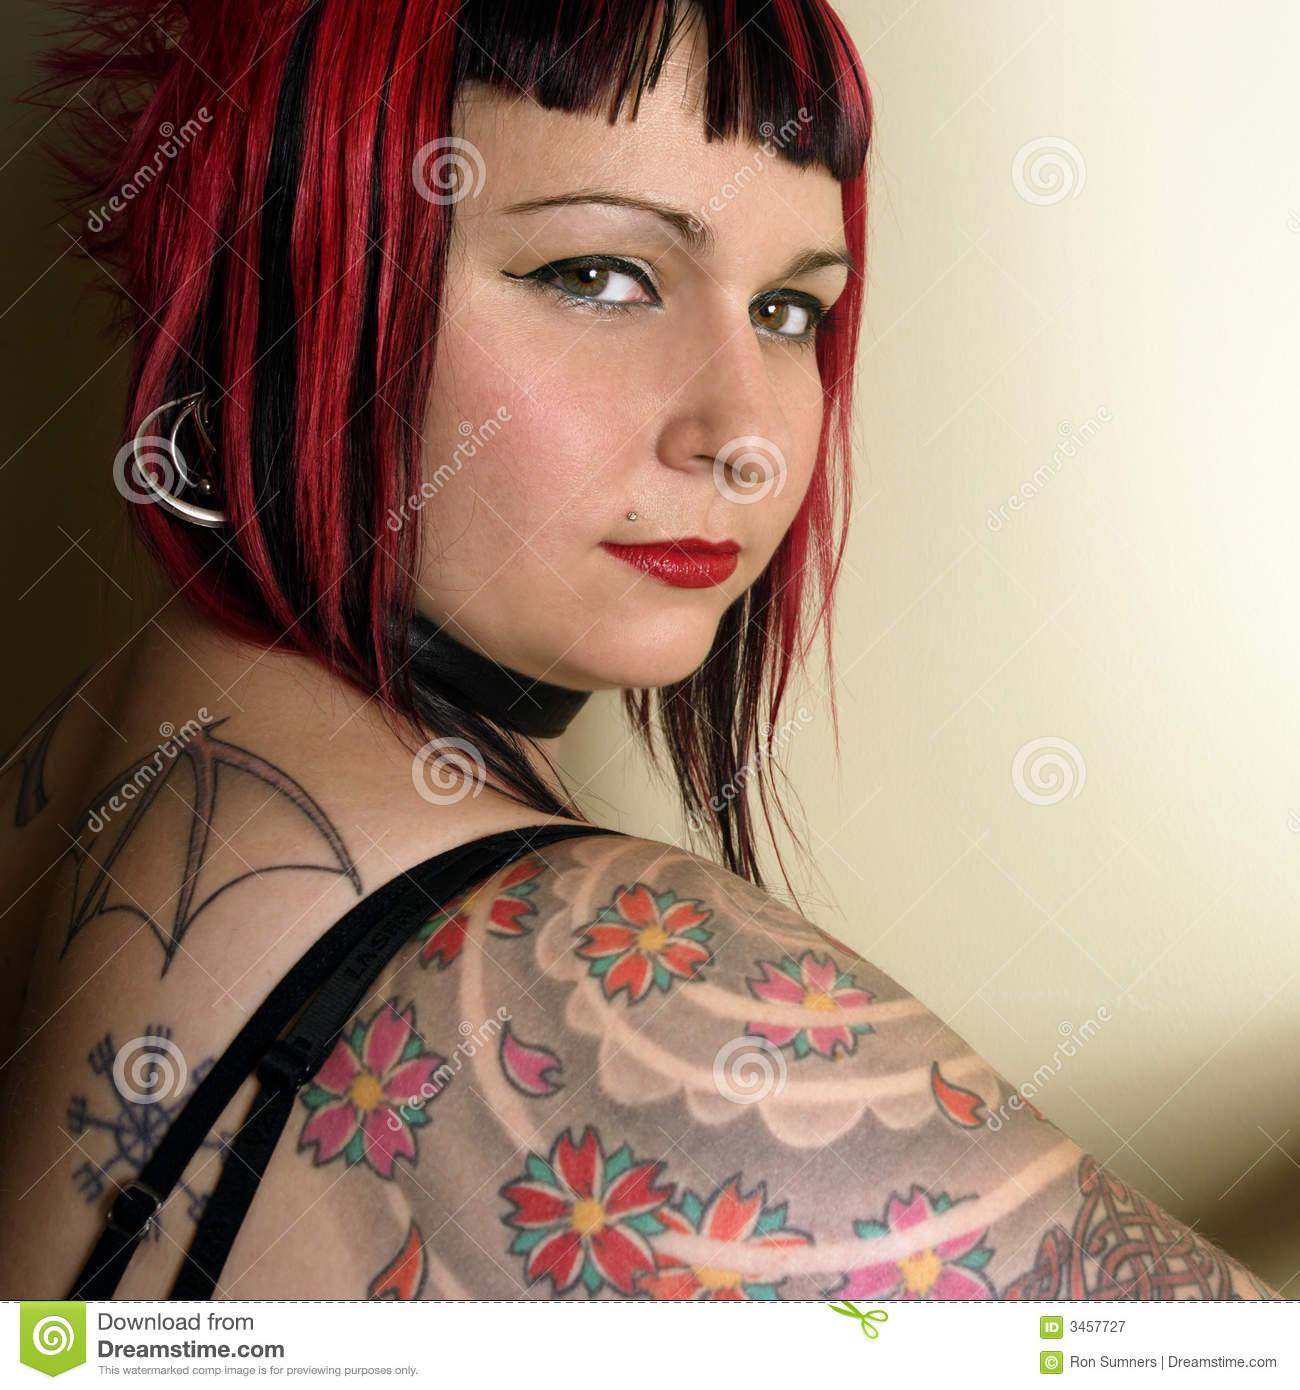 Tattoo Gothic Woman: Beautiful Tattoo Goth Girl Stock Image. Image Of Pretty